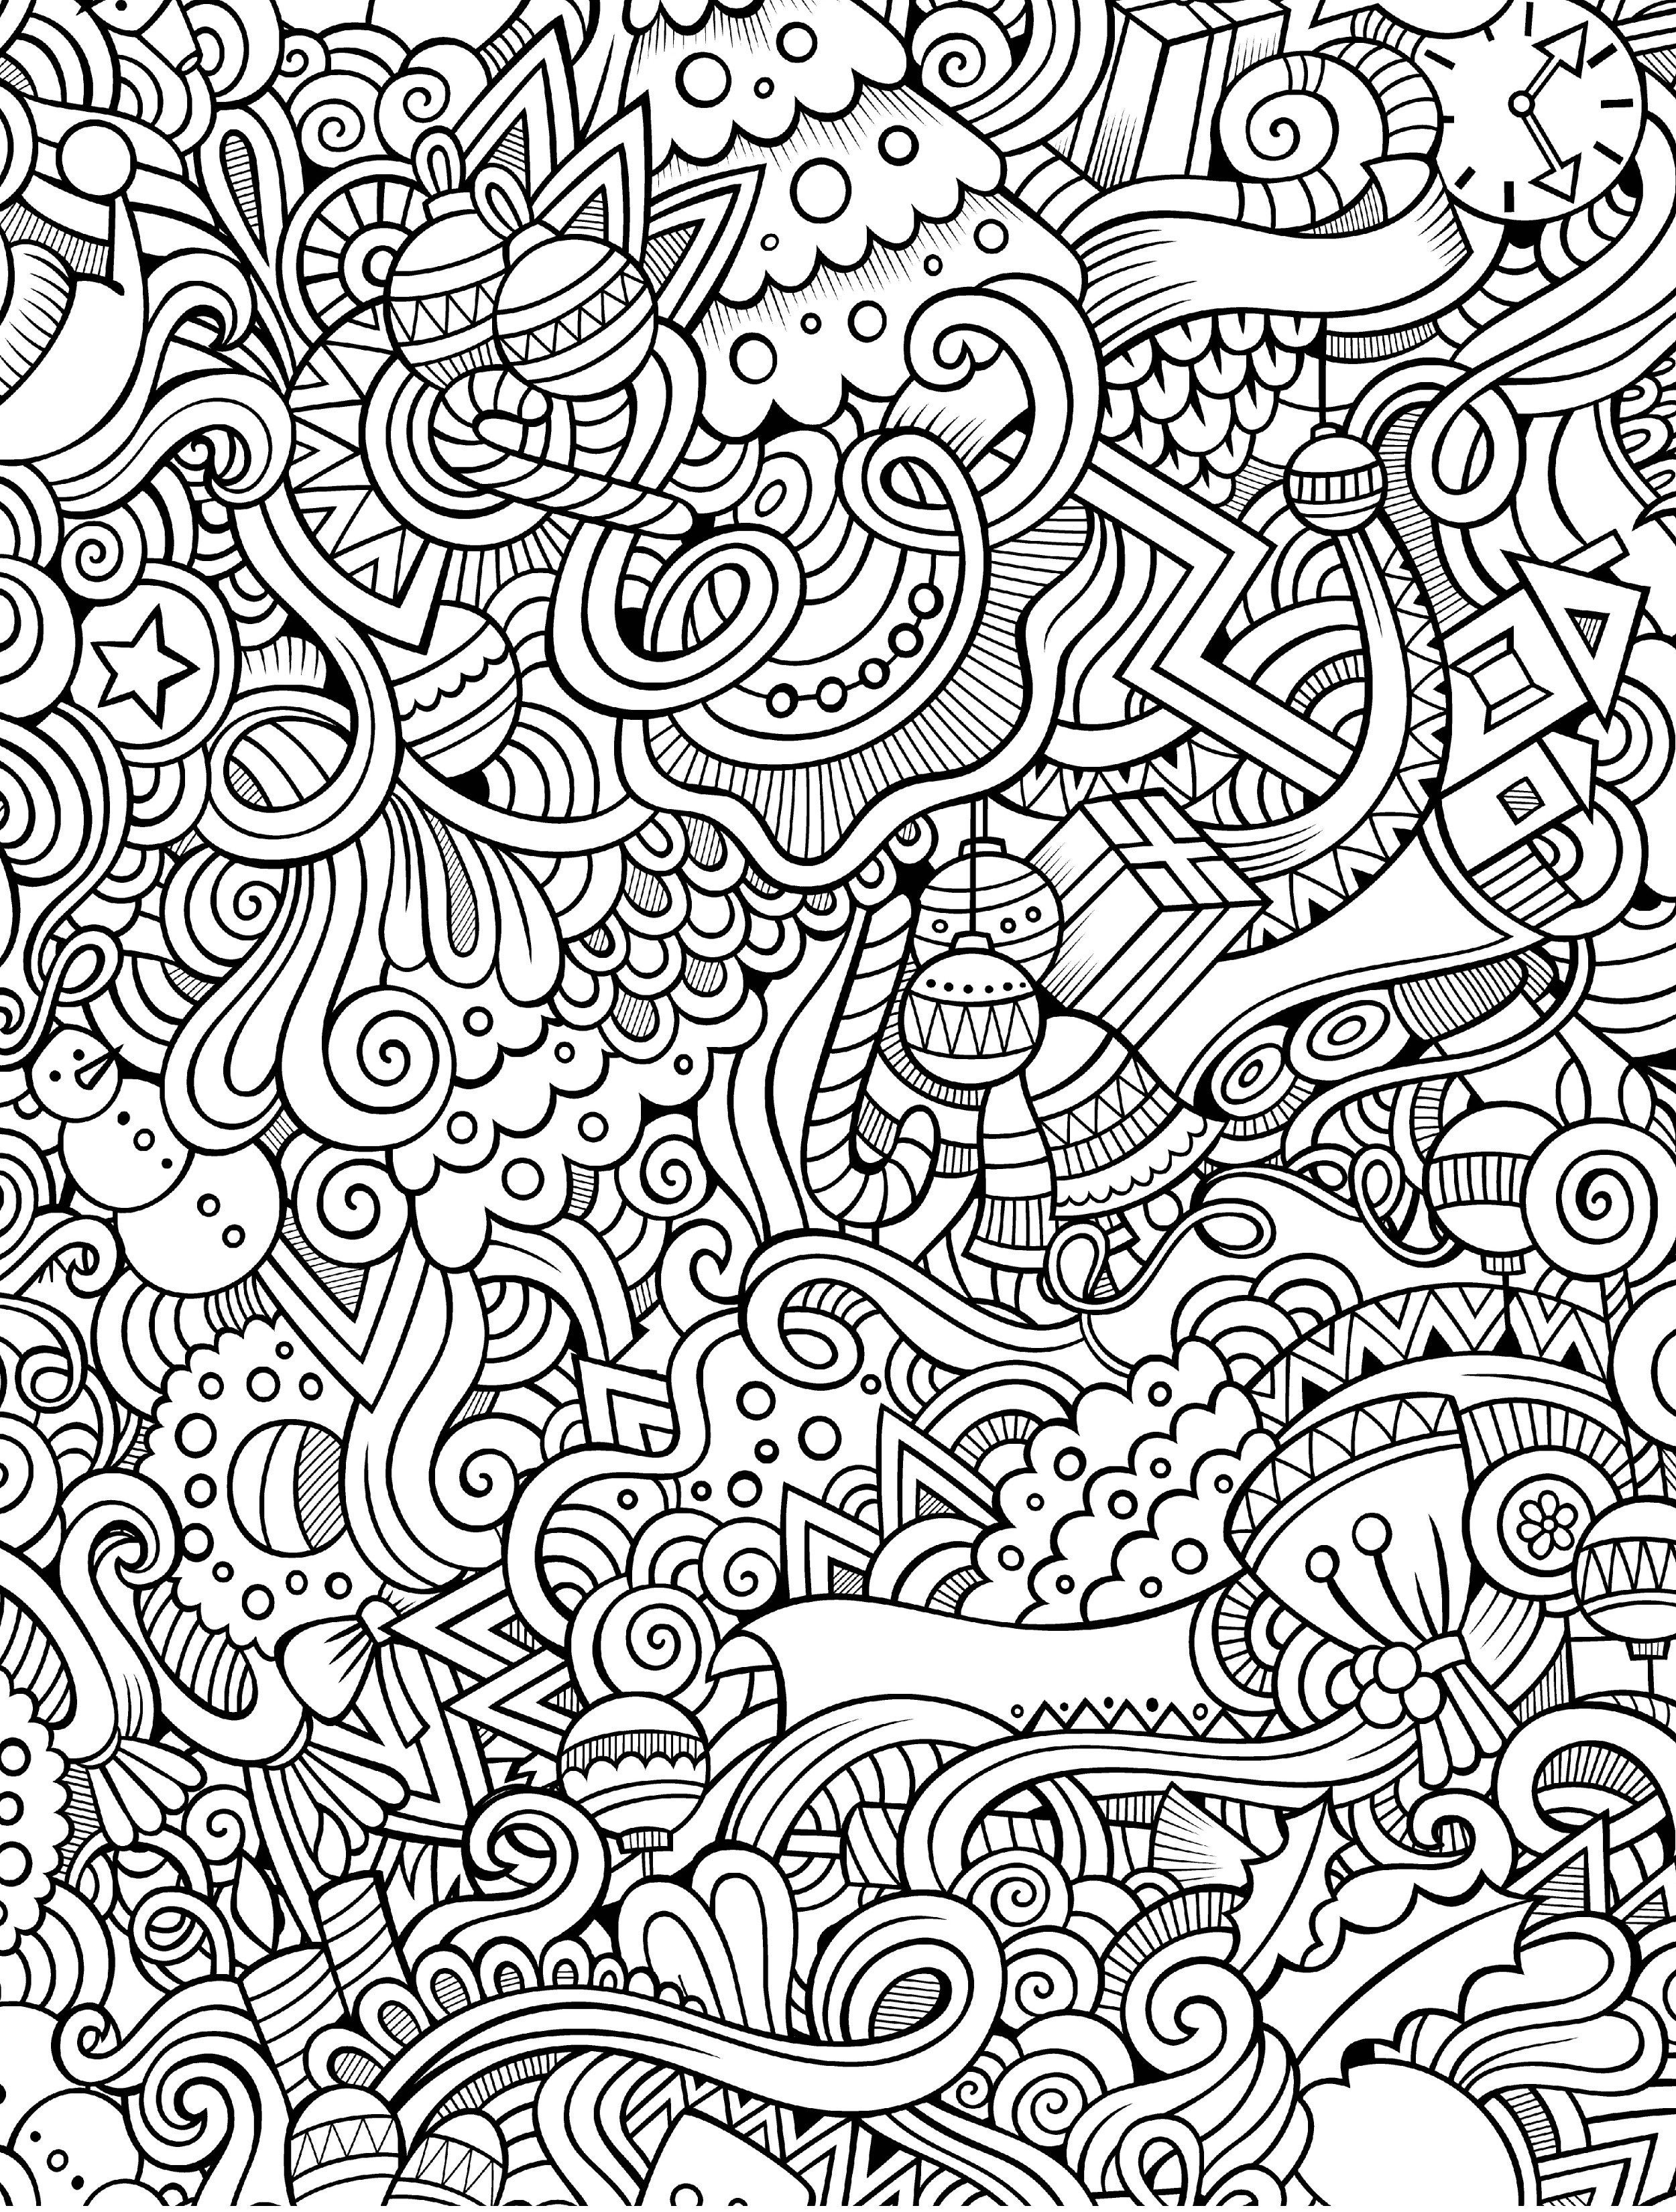 10 Free Printable Holiday Adult Coloring Pages   Coloring Pages - Free Printable Zen Coloring Pages